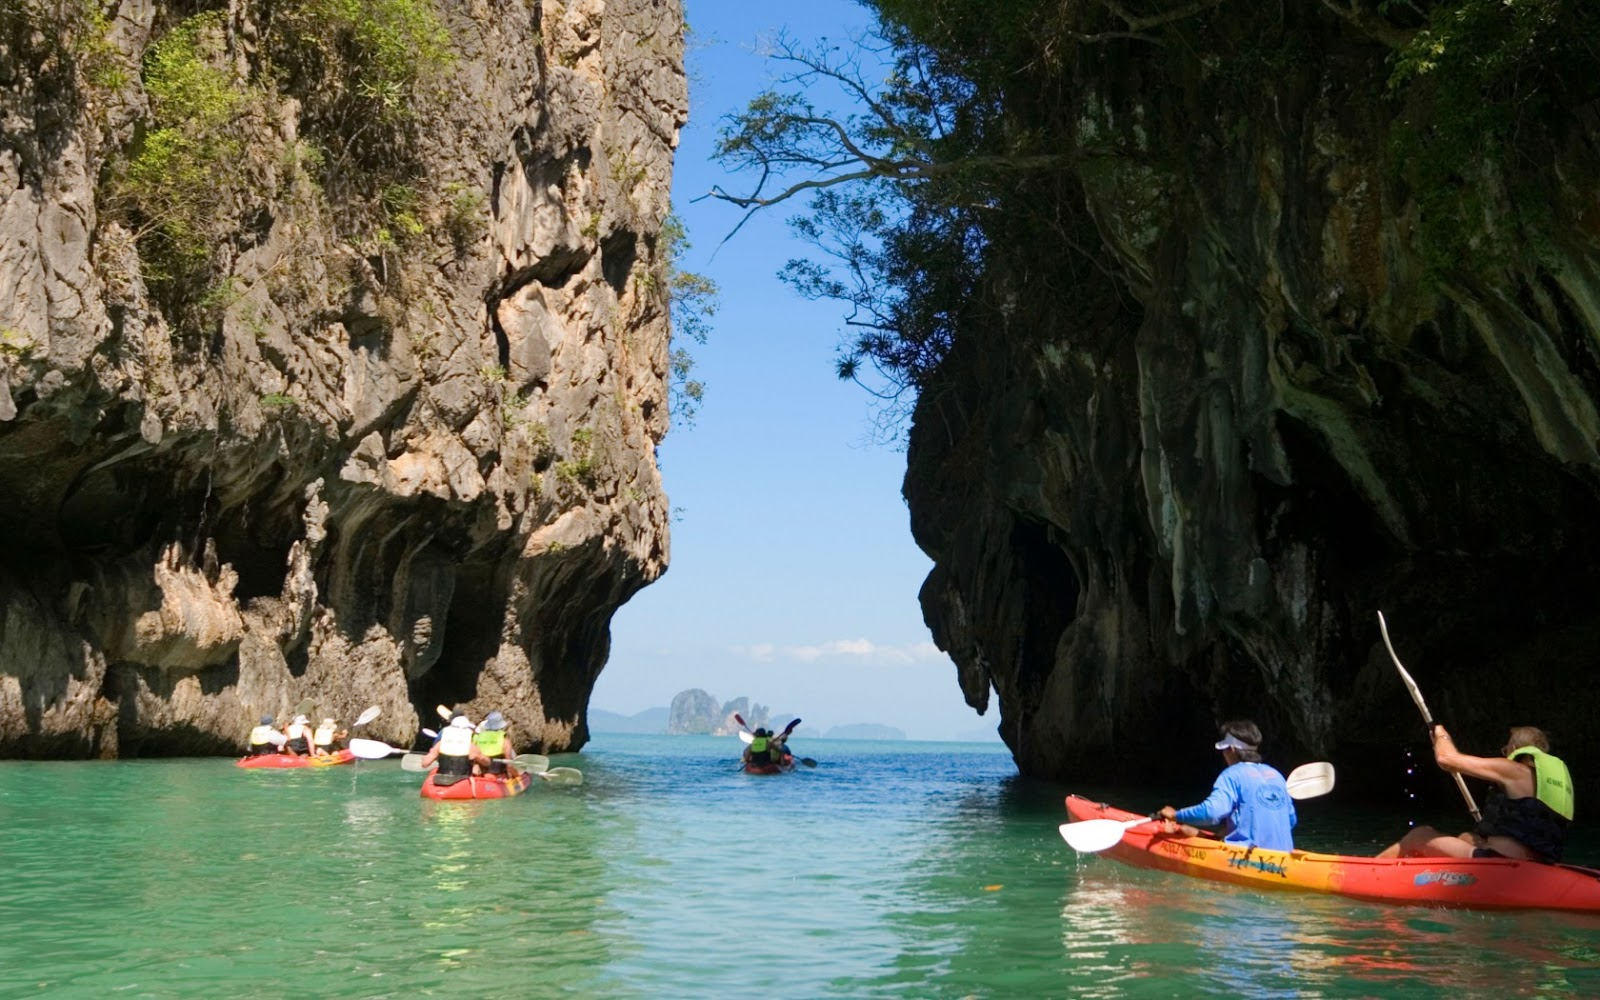 Sea Kayaking at Hong Island from Ao Thalane